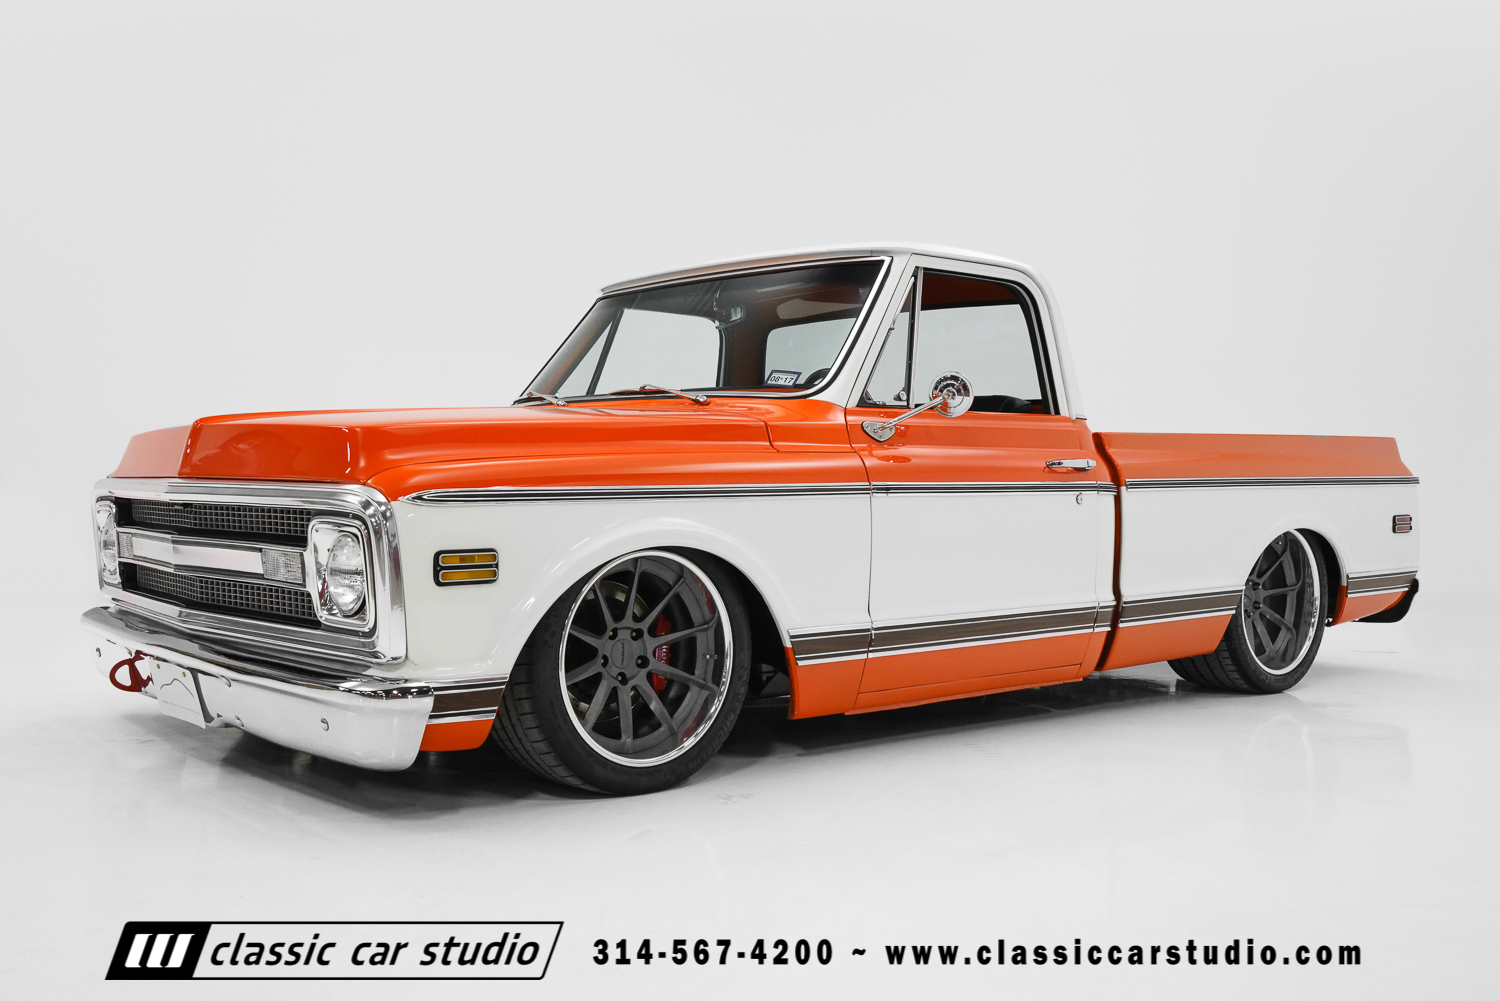 1970 Chevrolet C10 Pro Touring Classic Car Studio 1955 Ford F100 Pick Up St Louis 70 1